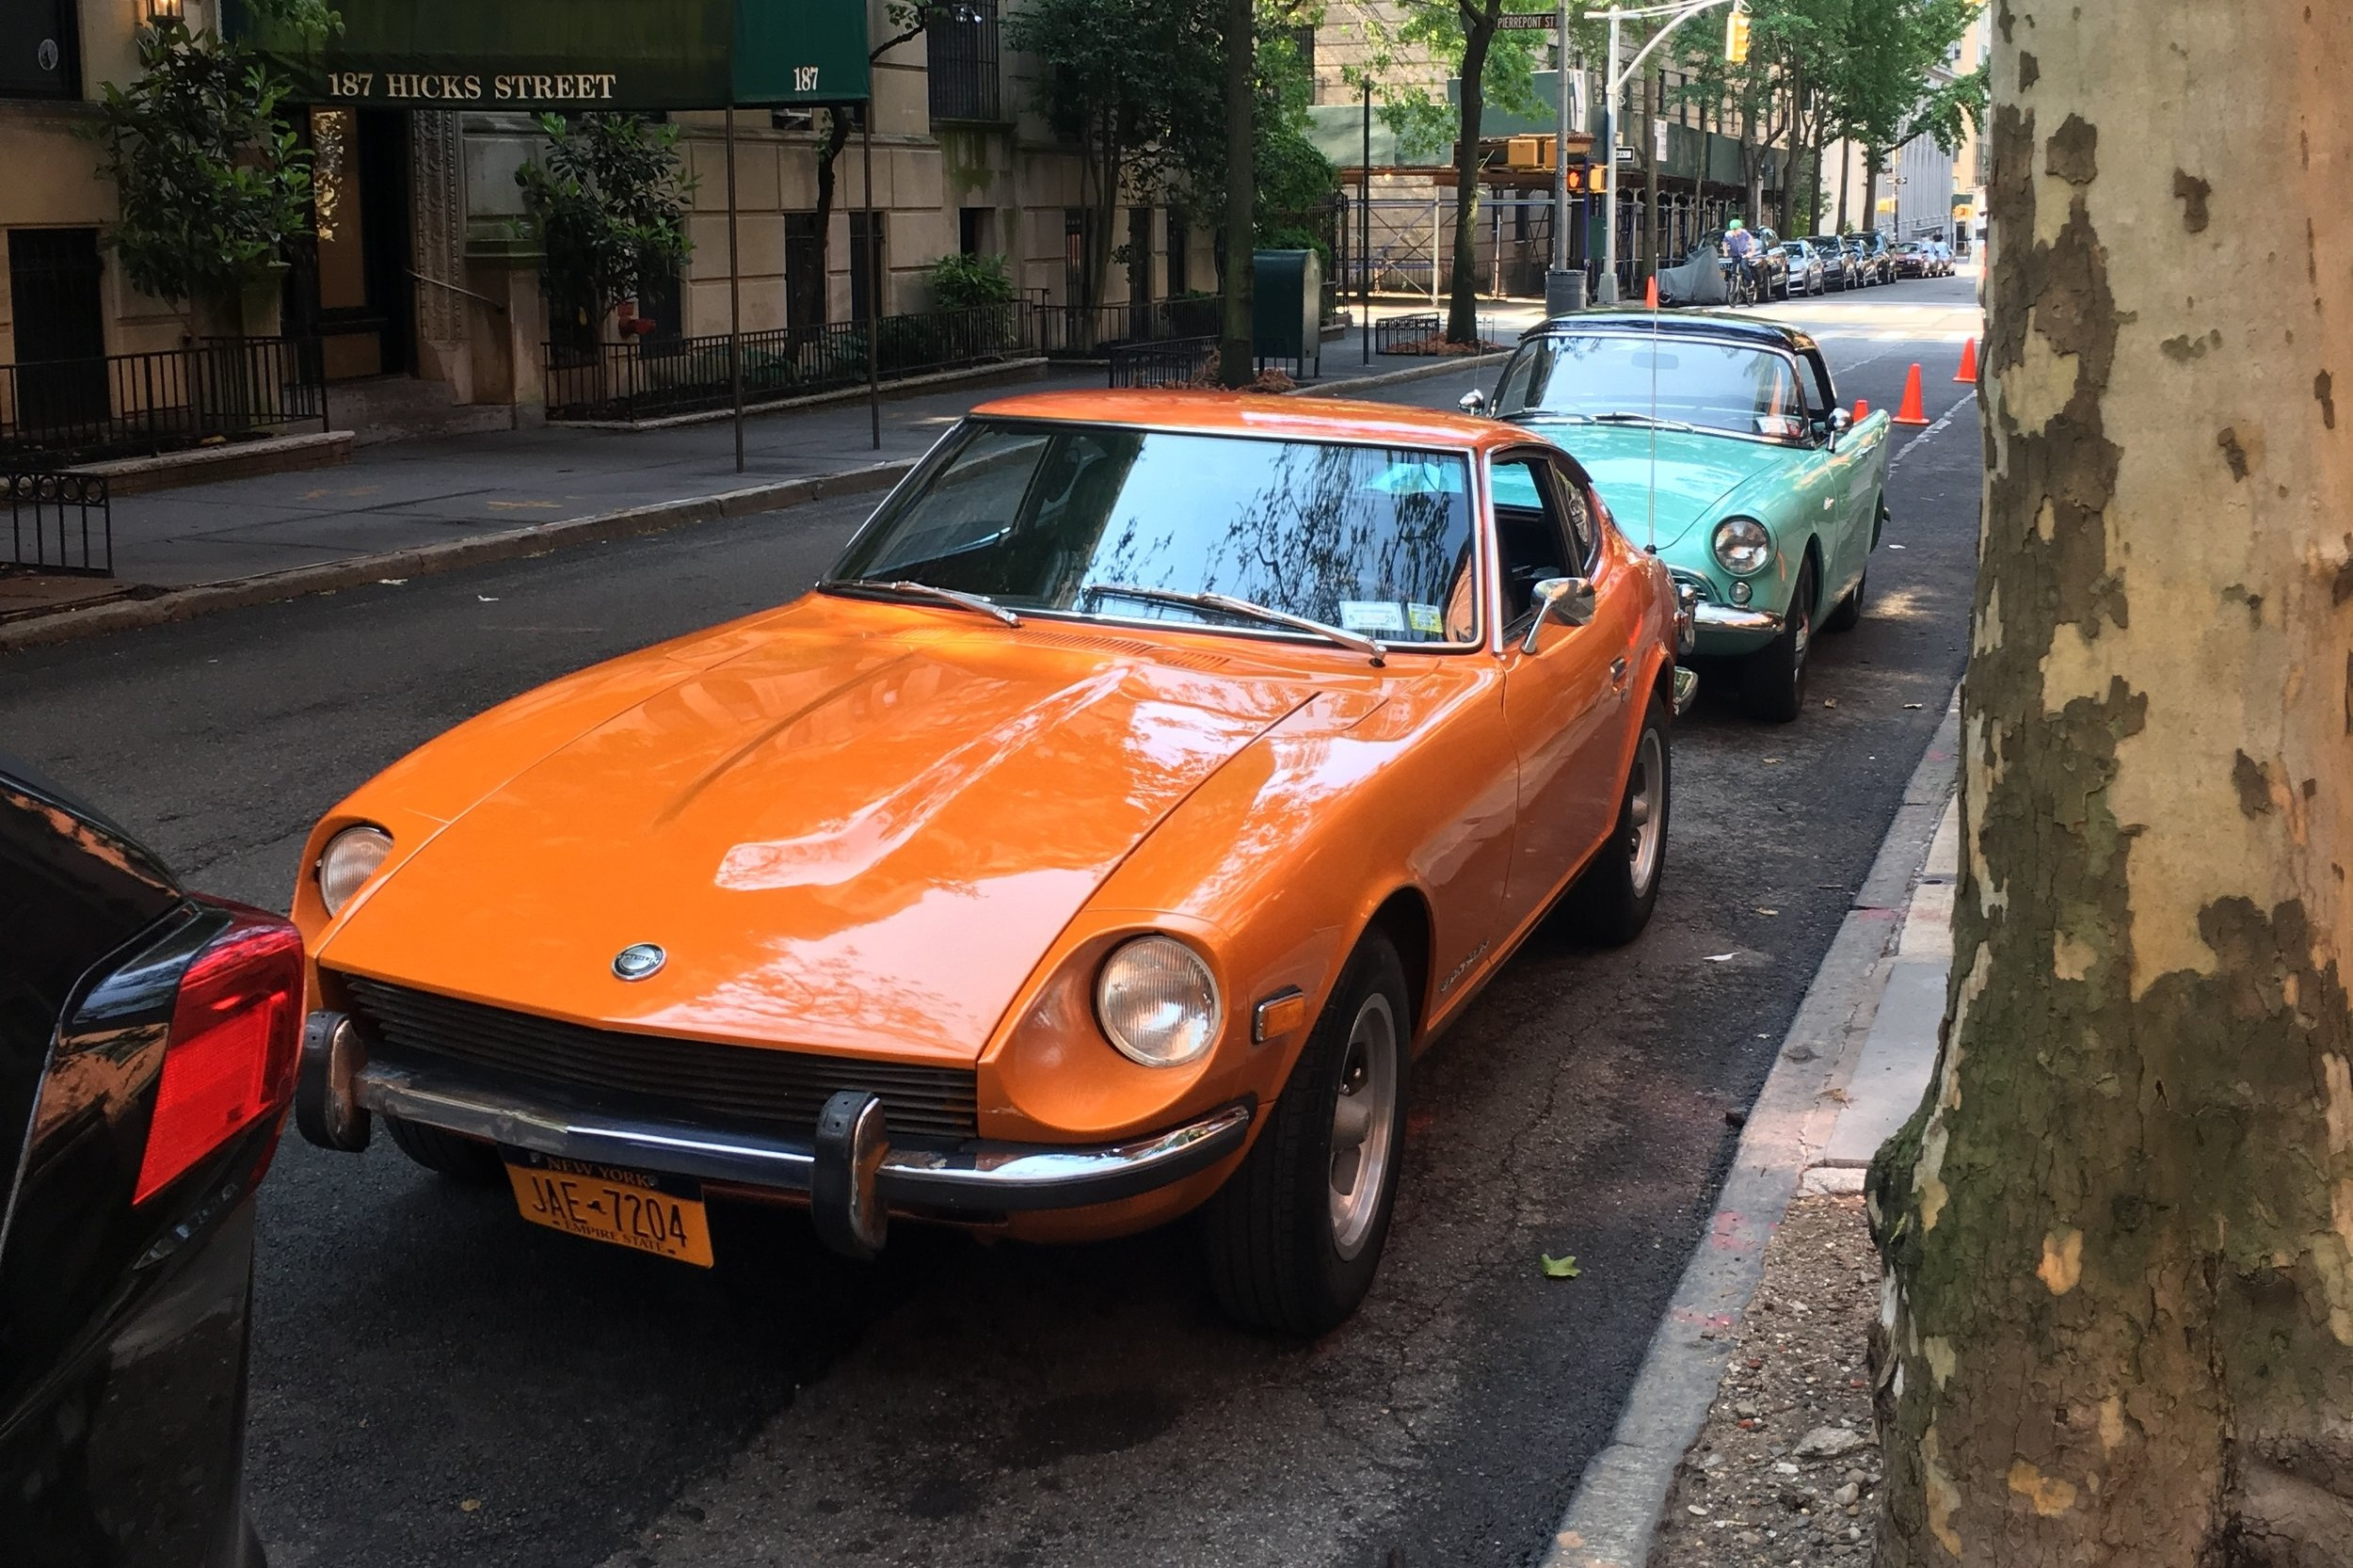 Both the  '73 Datsun  and  '60 Alpine  came from  Sunday Drivers NYGT , beatiful cars!